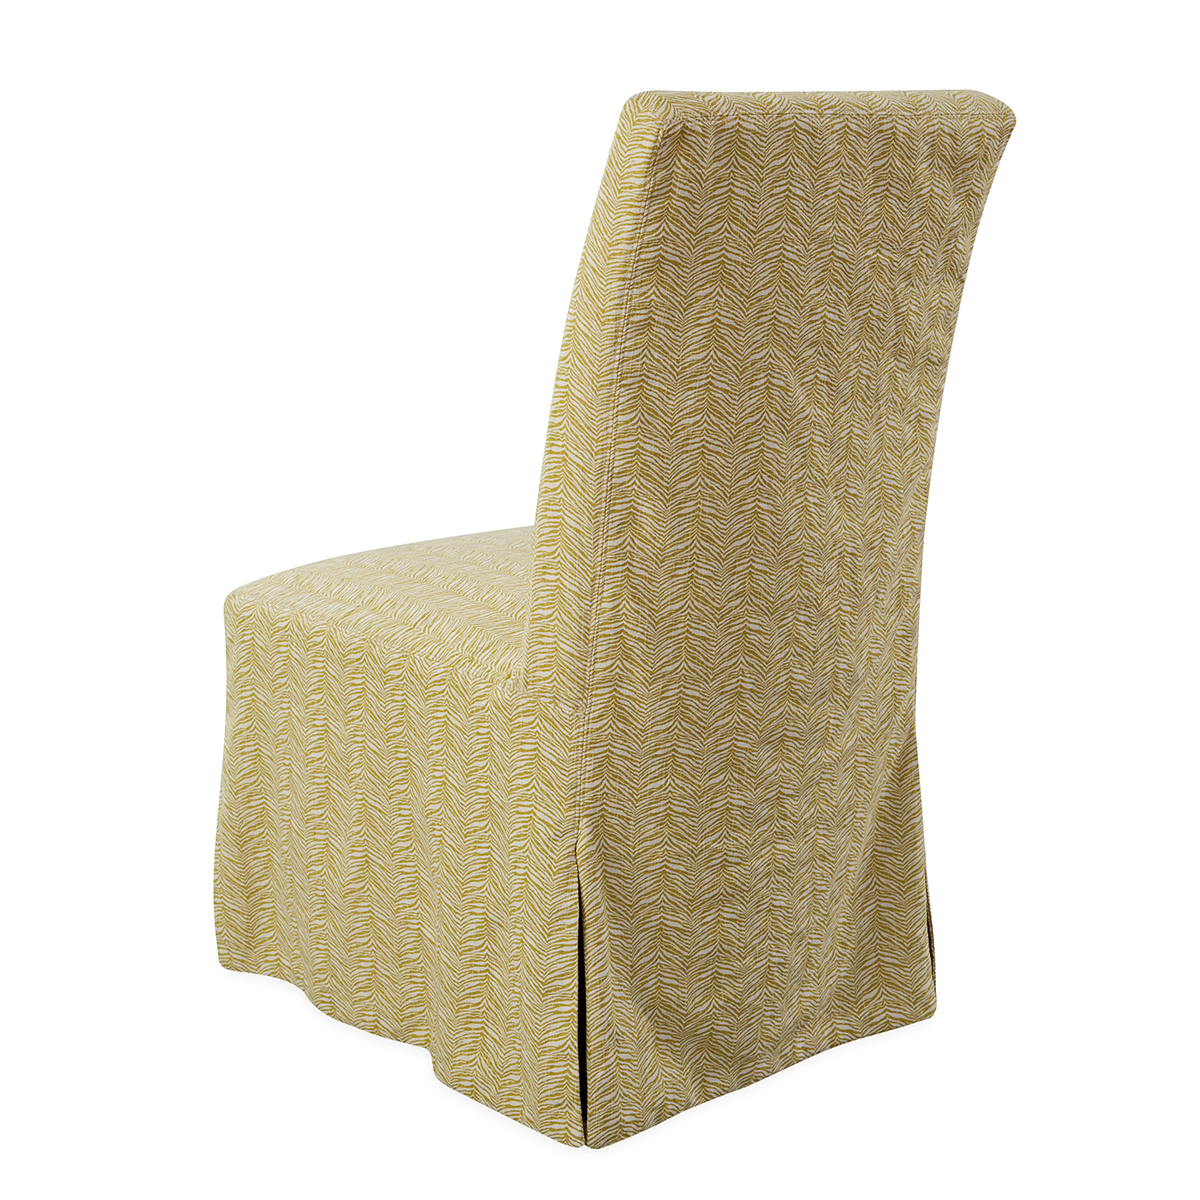 Slipcovered_Hostess_chair_C5567-41_Lee_Industries_Back.jpg